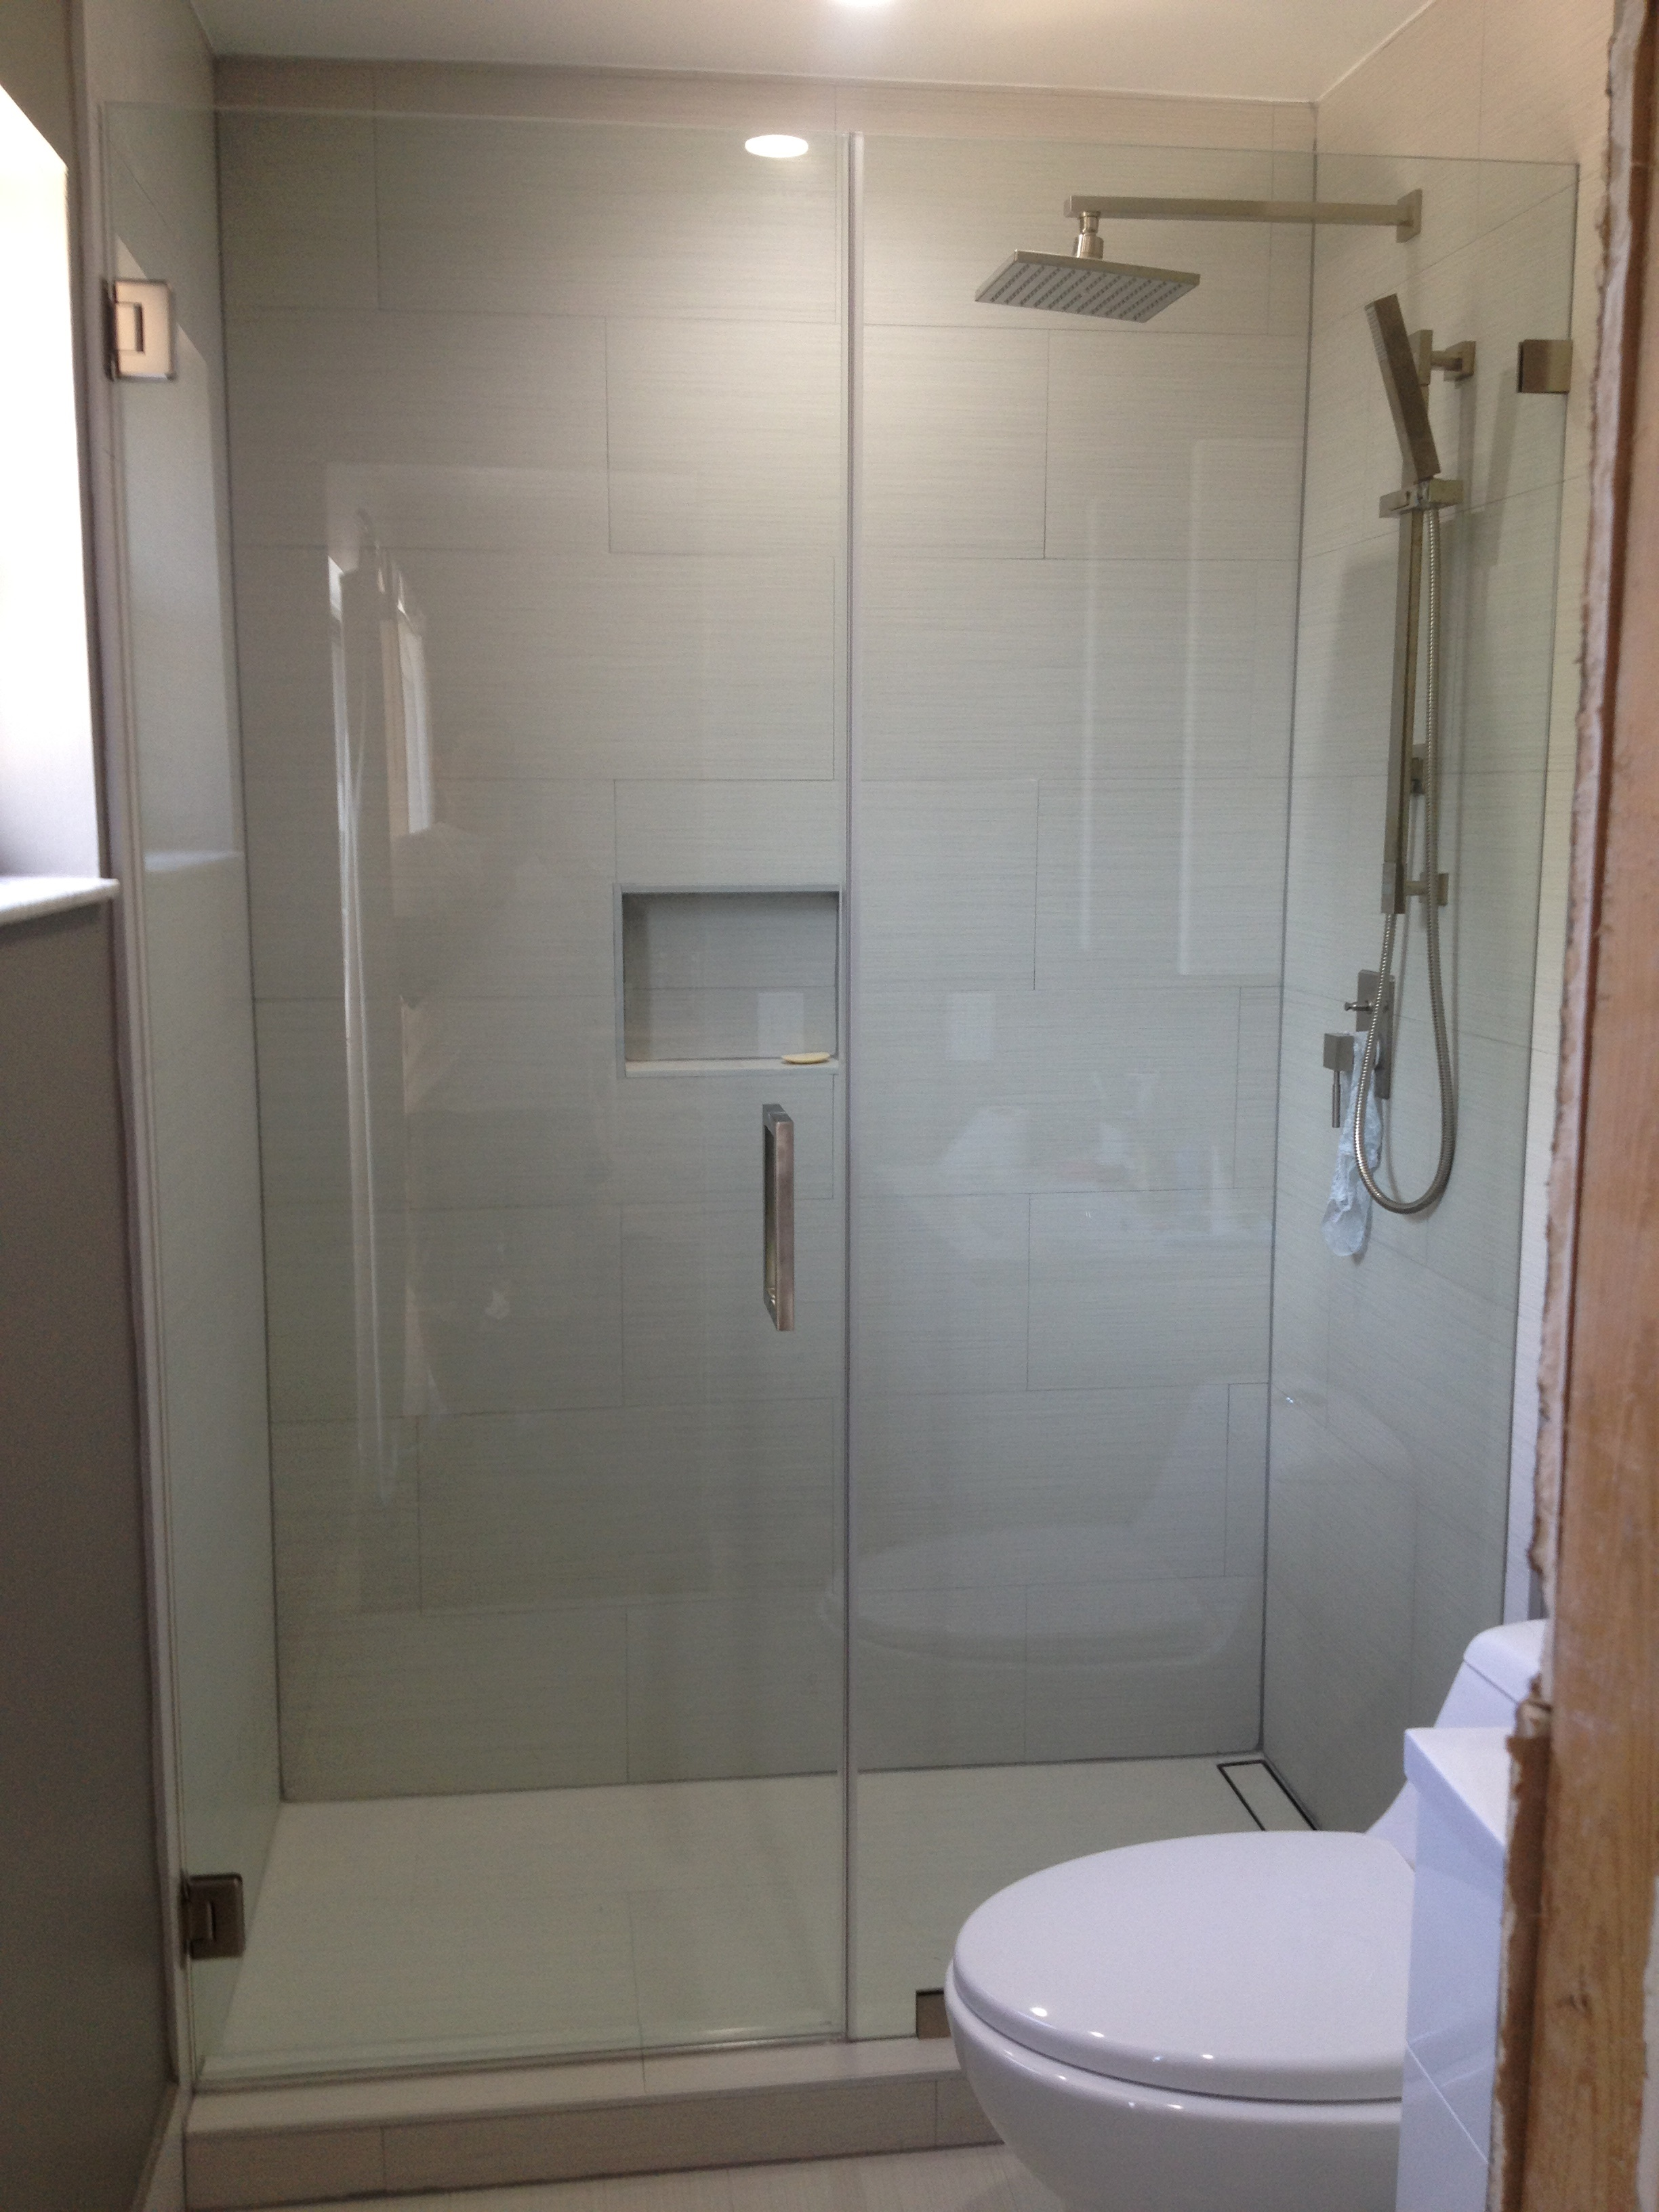 Elegant Shower Doors 343b Main St Hackensack Nj 07601 Yp Com